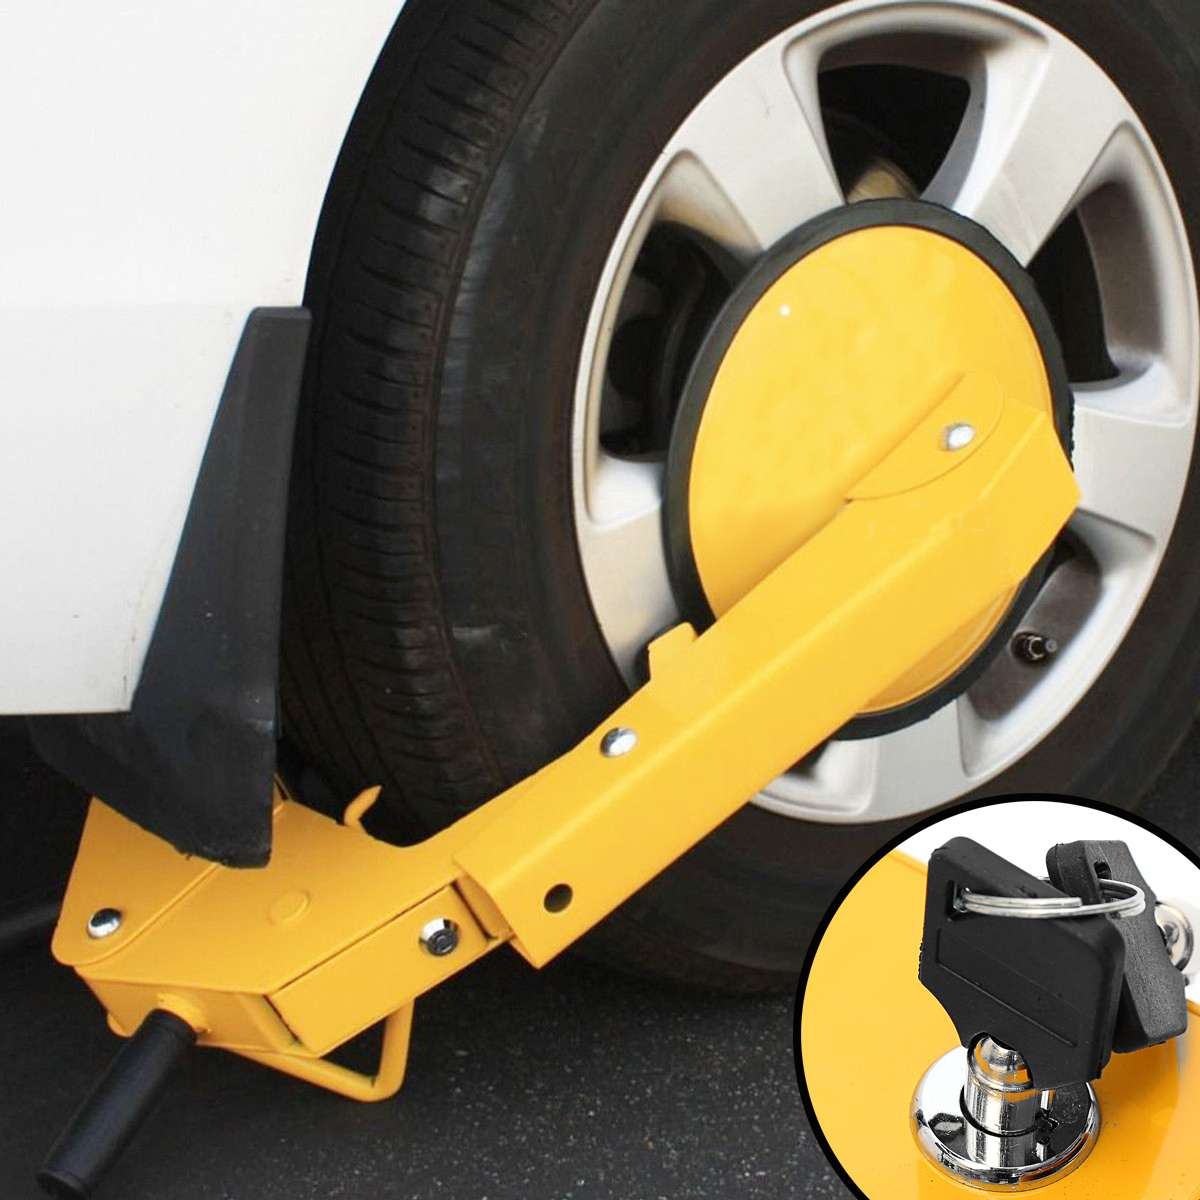 ATV RV Car Tire Claw Wheel Lock Clamp Boat Truck Trailer Lock Anti Theft Parking Boot Theft Devices Vehicle Lock for Car